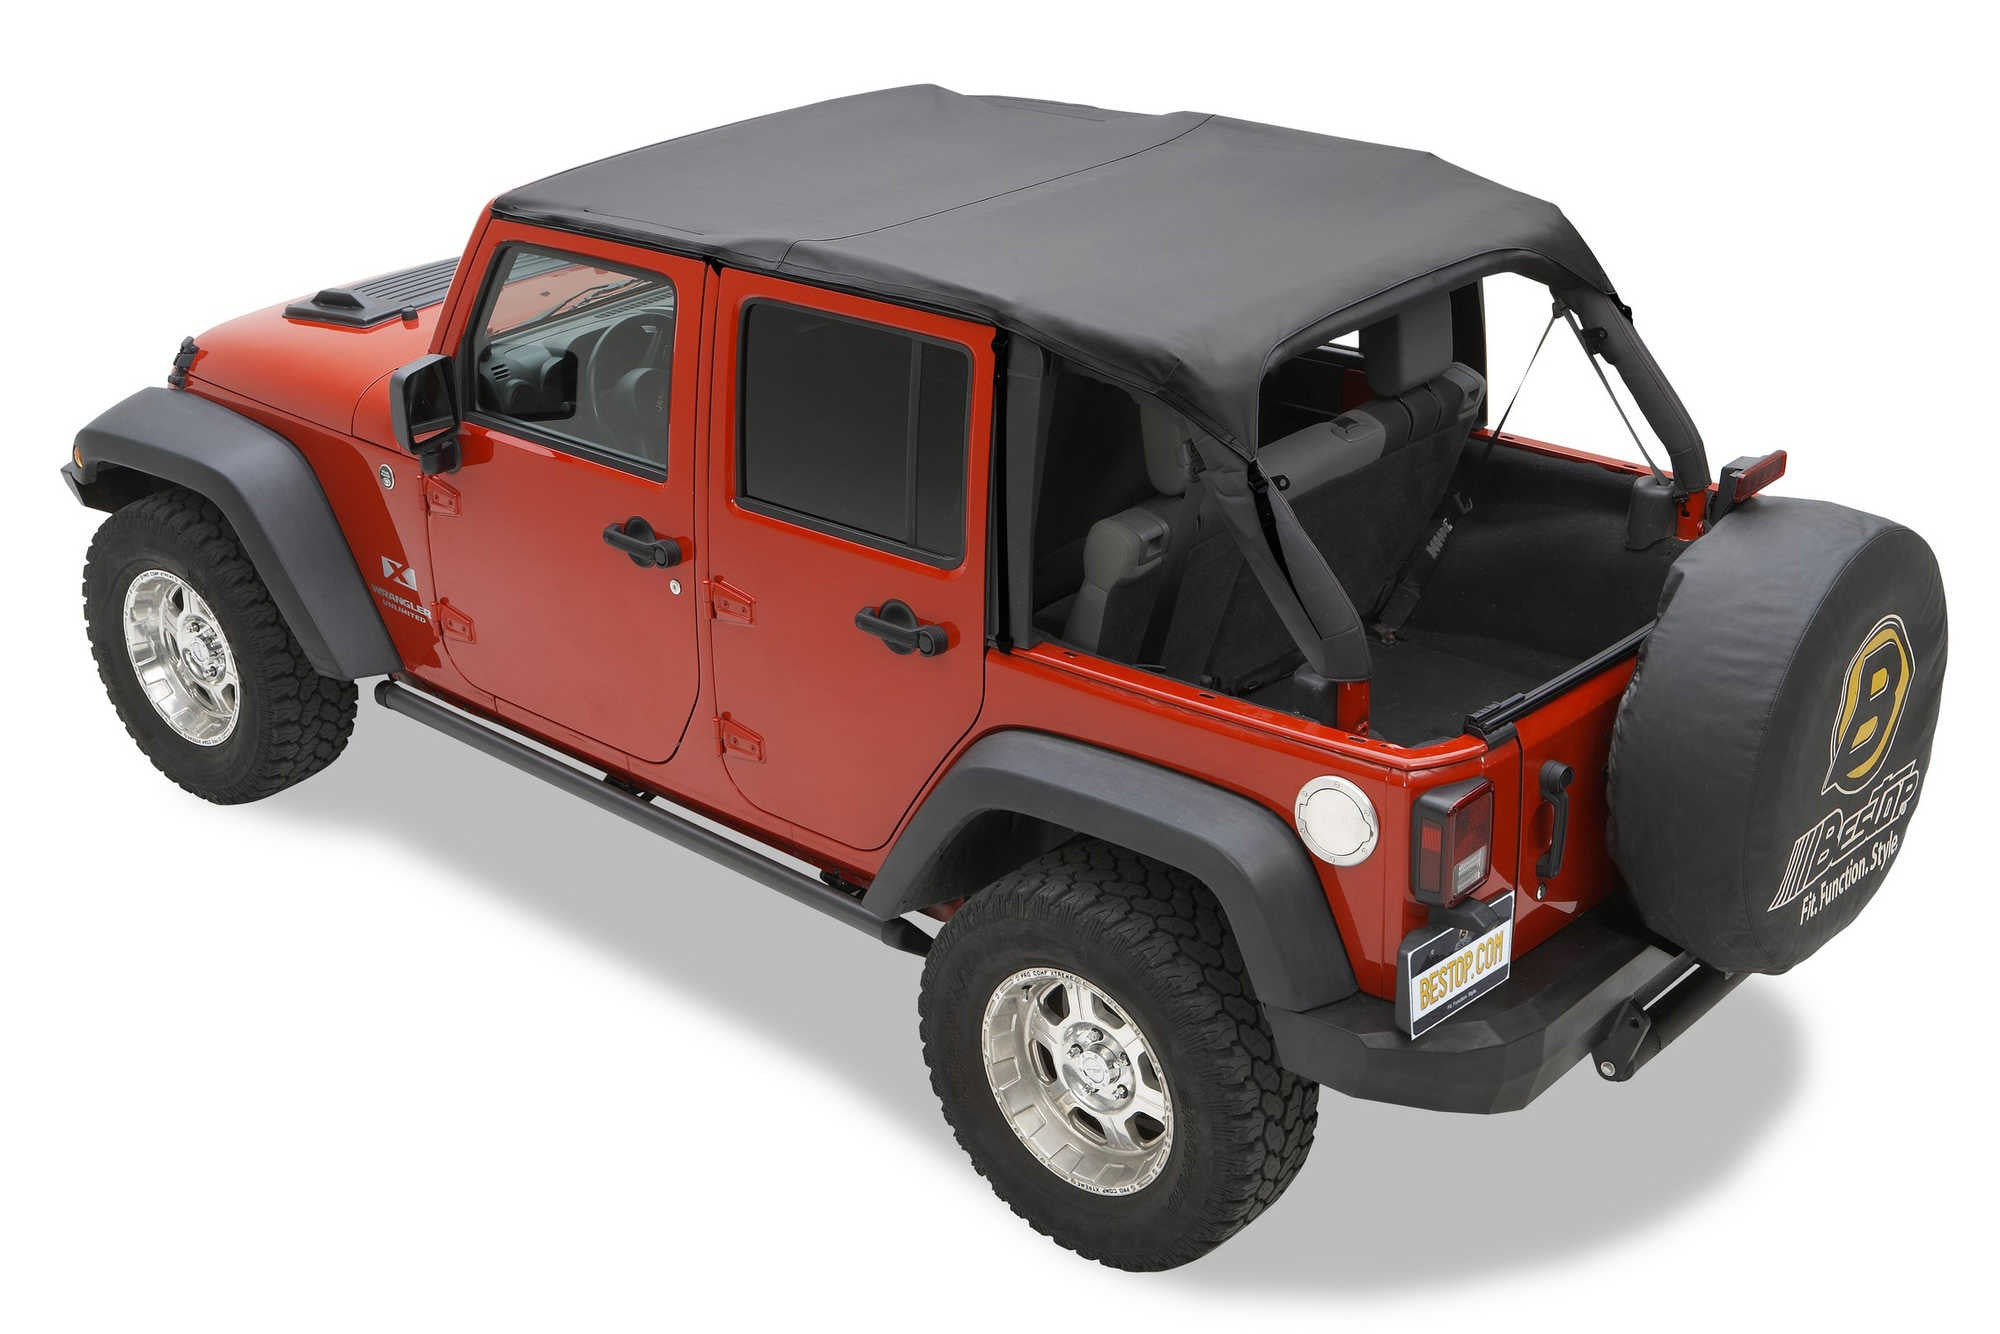 52594-35 Take A Look About Jeep Dog Accessories with Captivating Gallery Cars Review